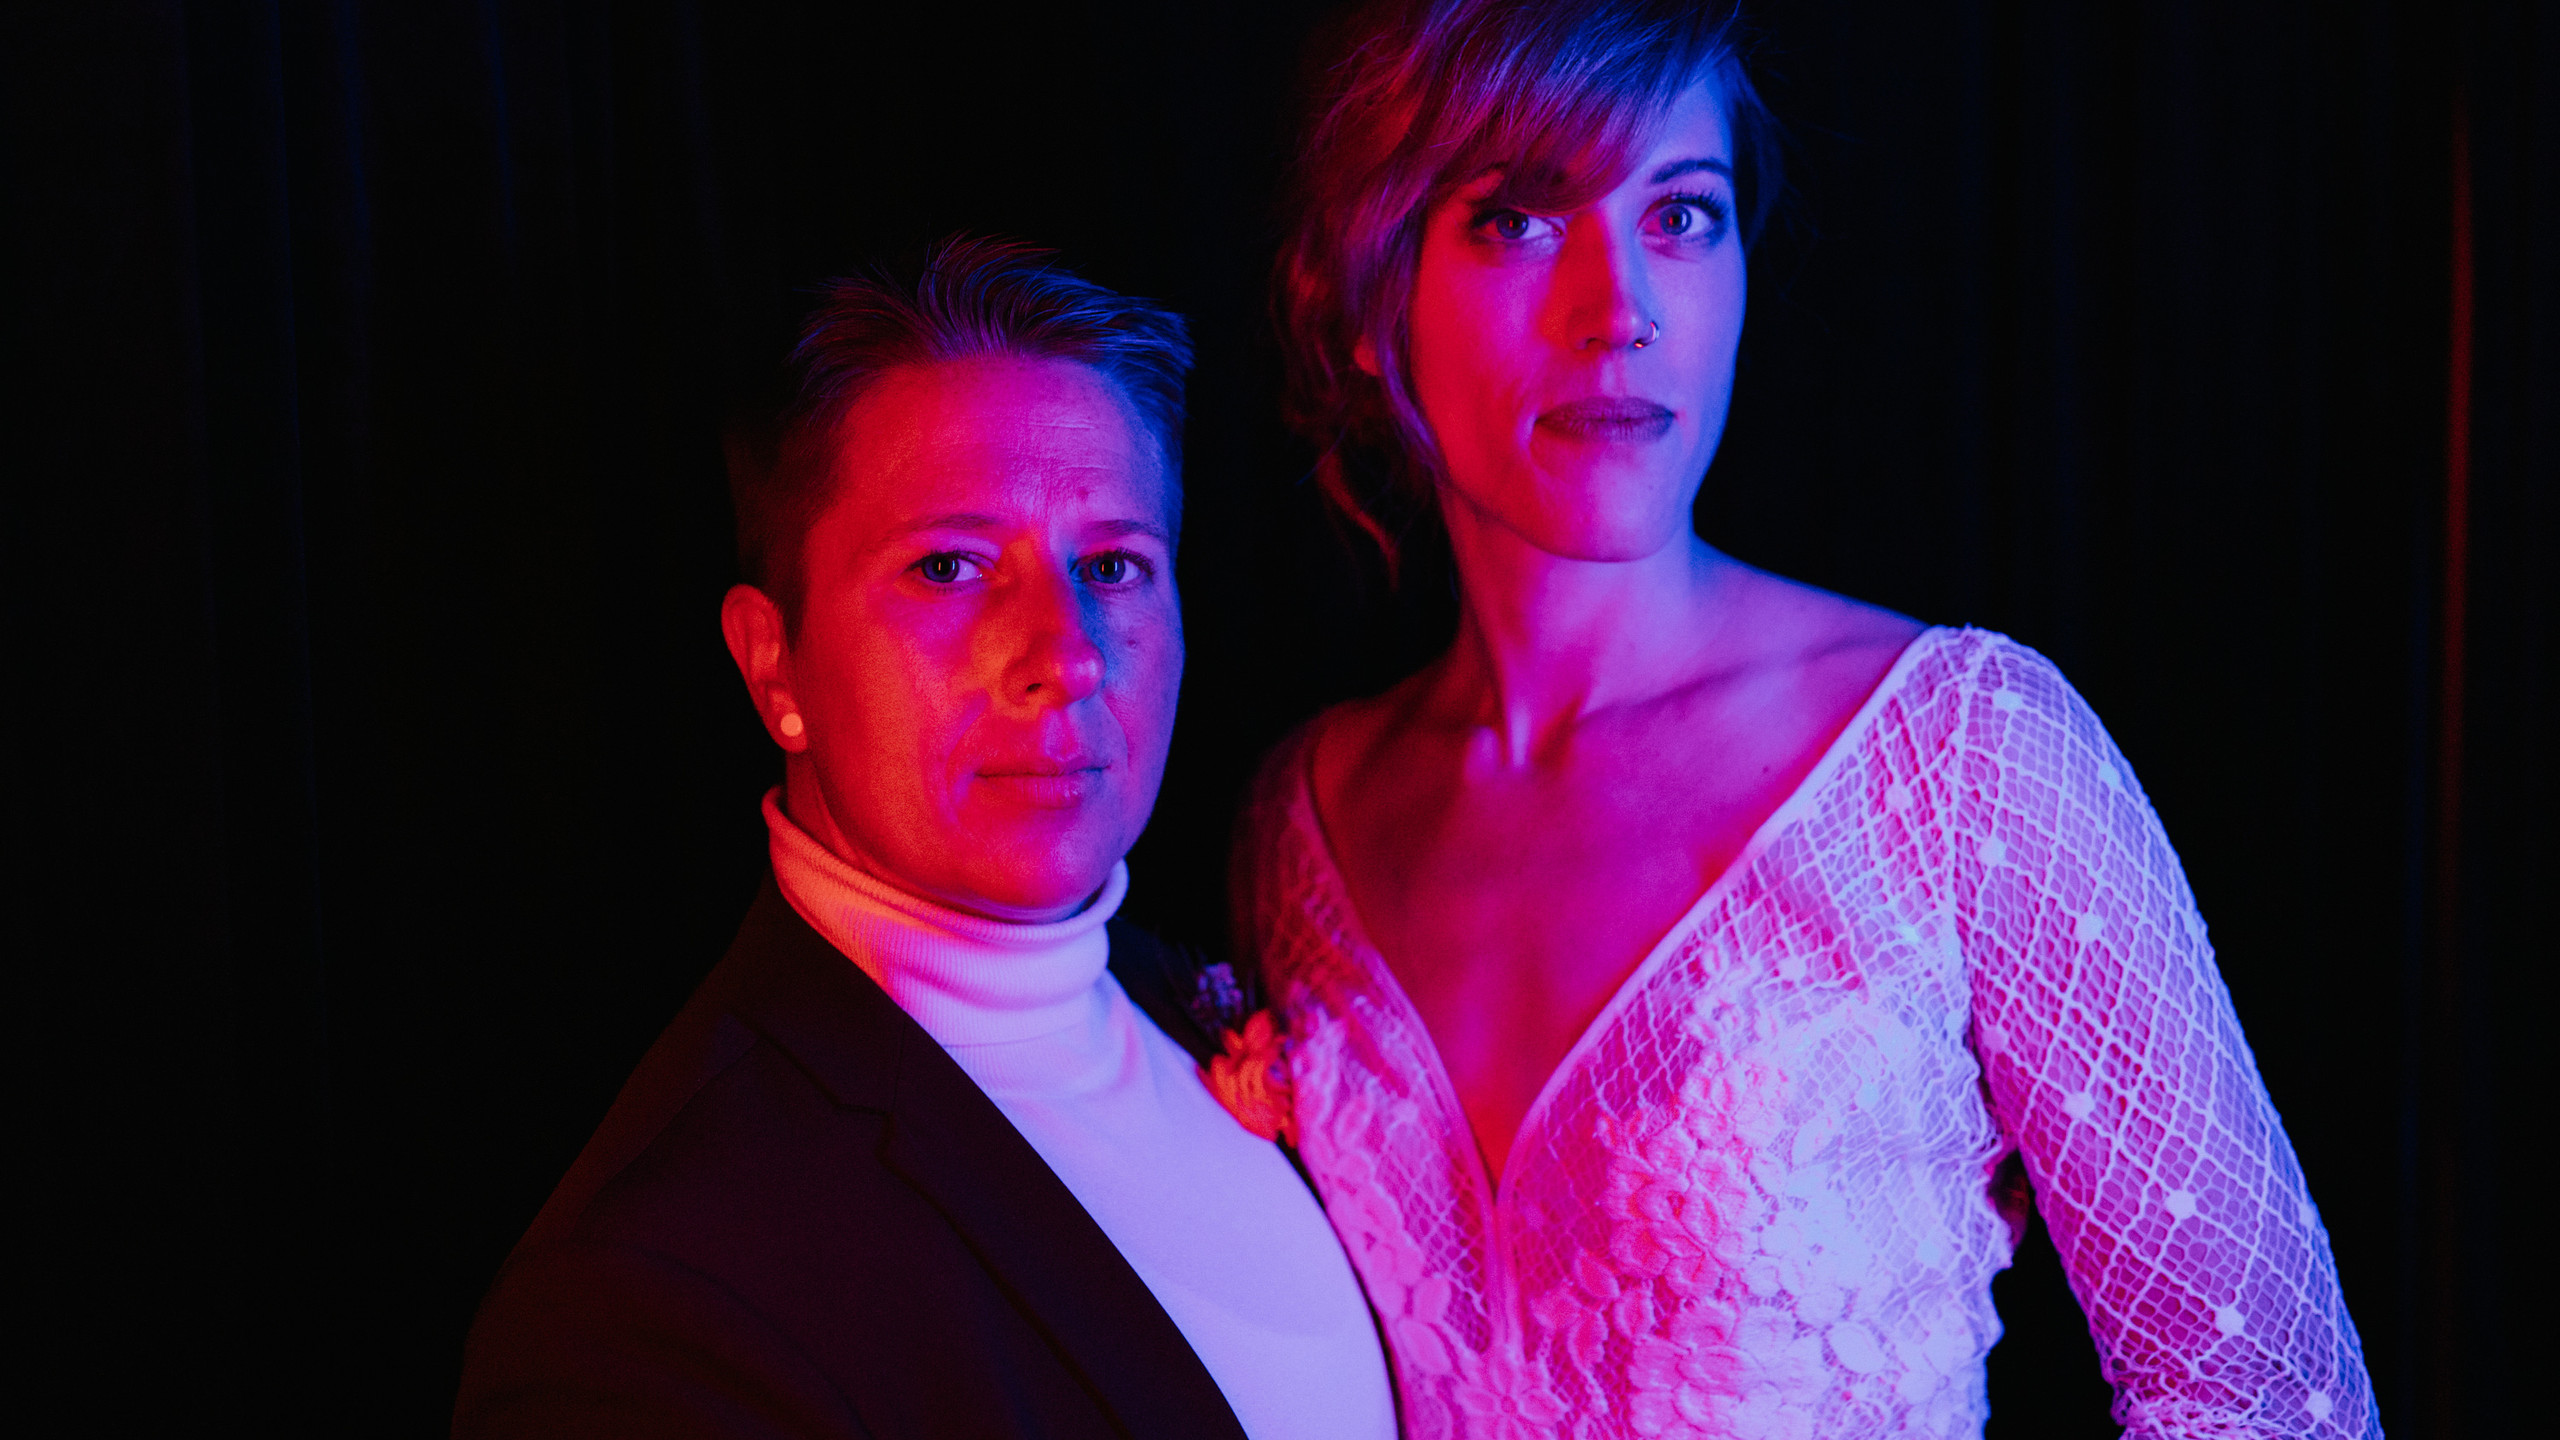 Neon color portrait of LGBTQ couple, one in maroon suit and the other in bridal sequin v-neck dress looking into the camera